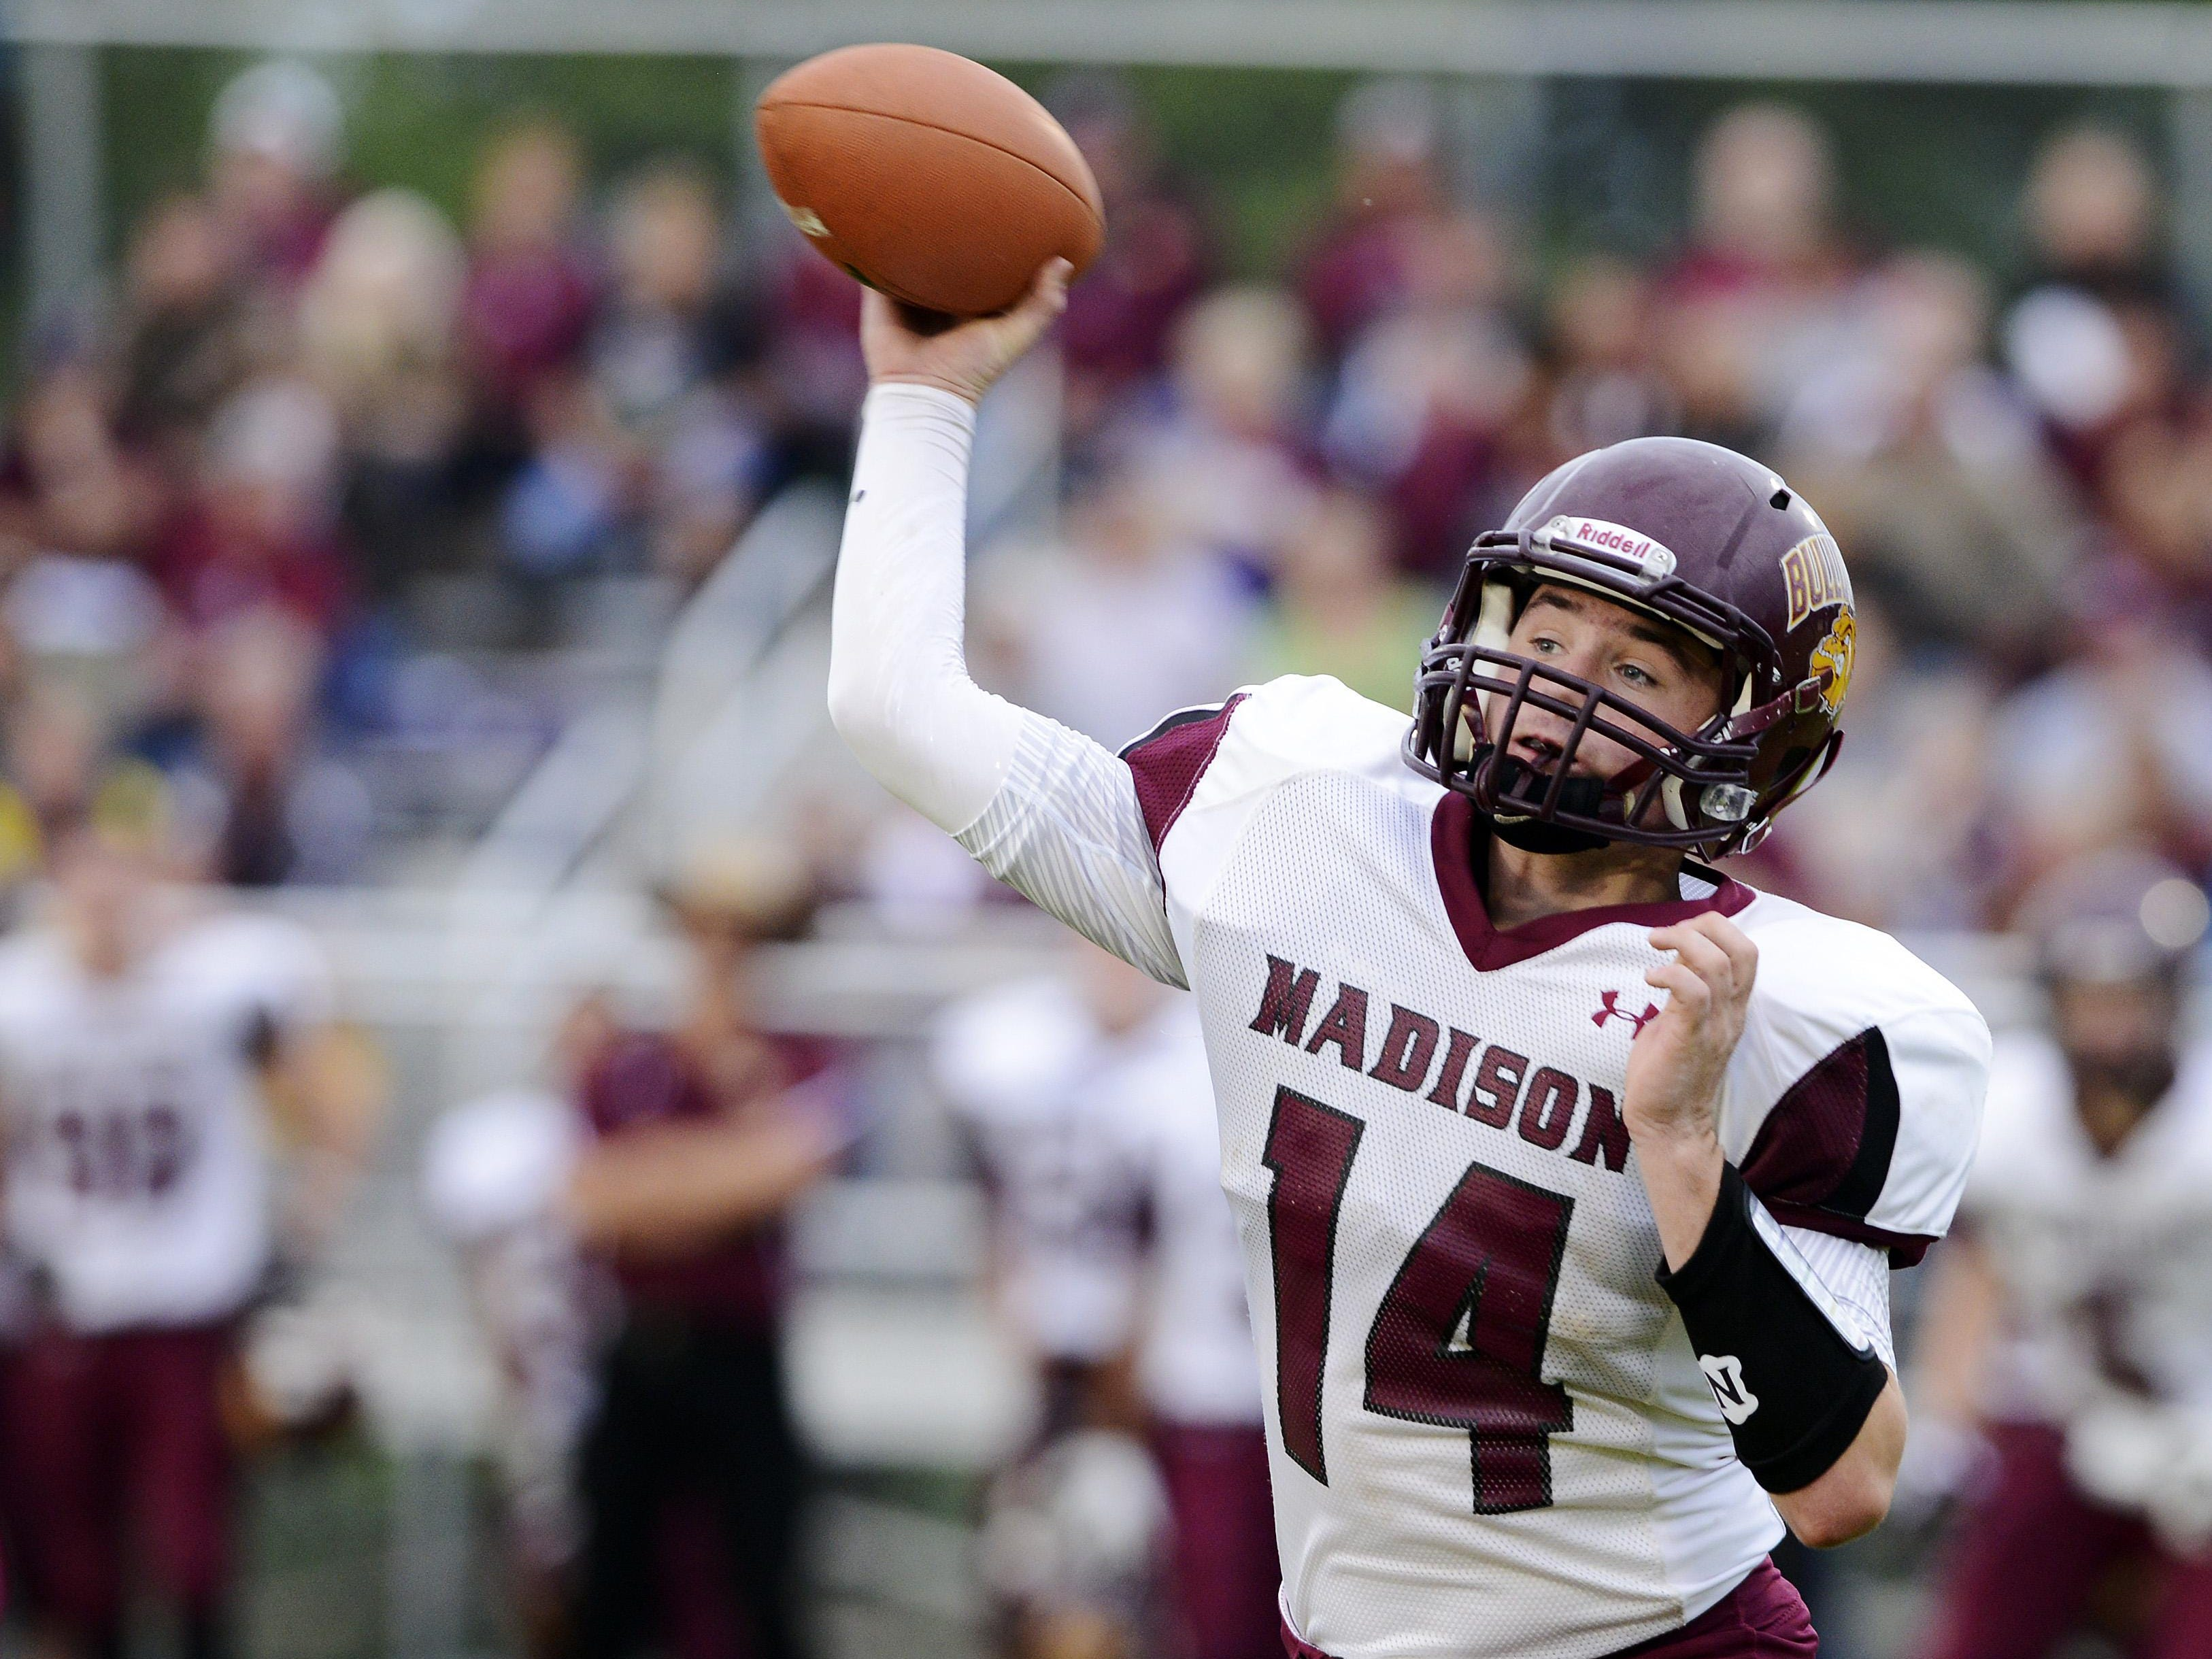 Madison quarterback Mitch Hansen, one of the state's premier signal callers, will have to contend with an experienced West Central defense Friday night.